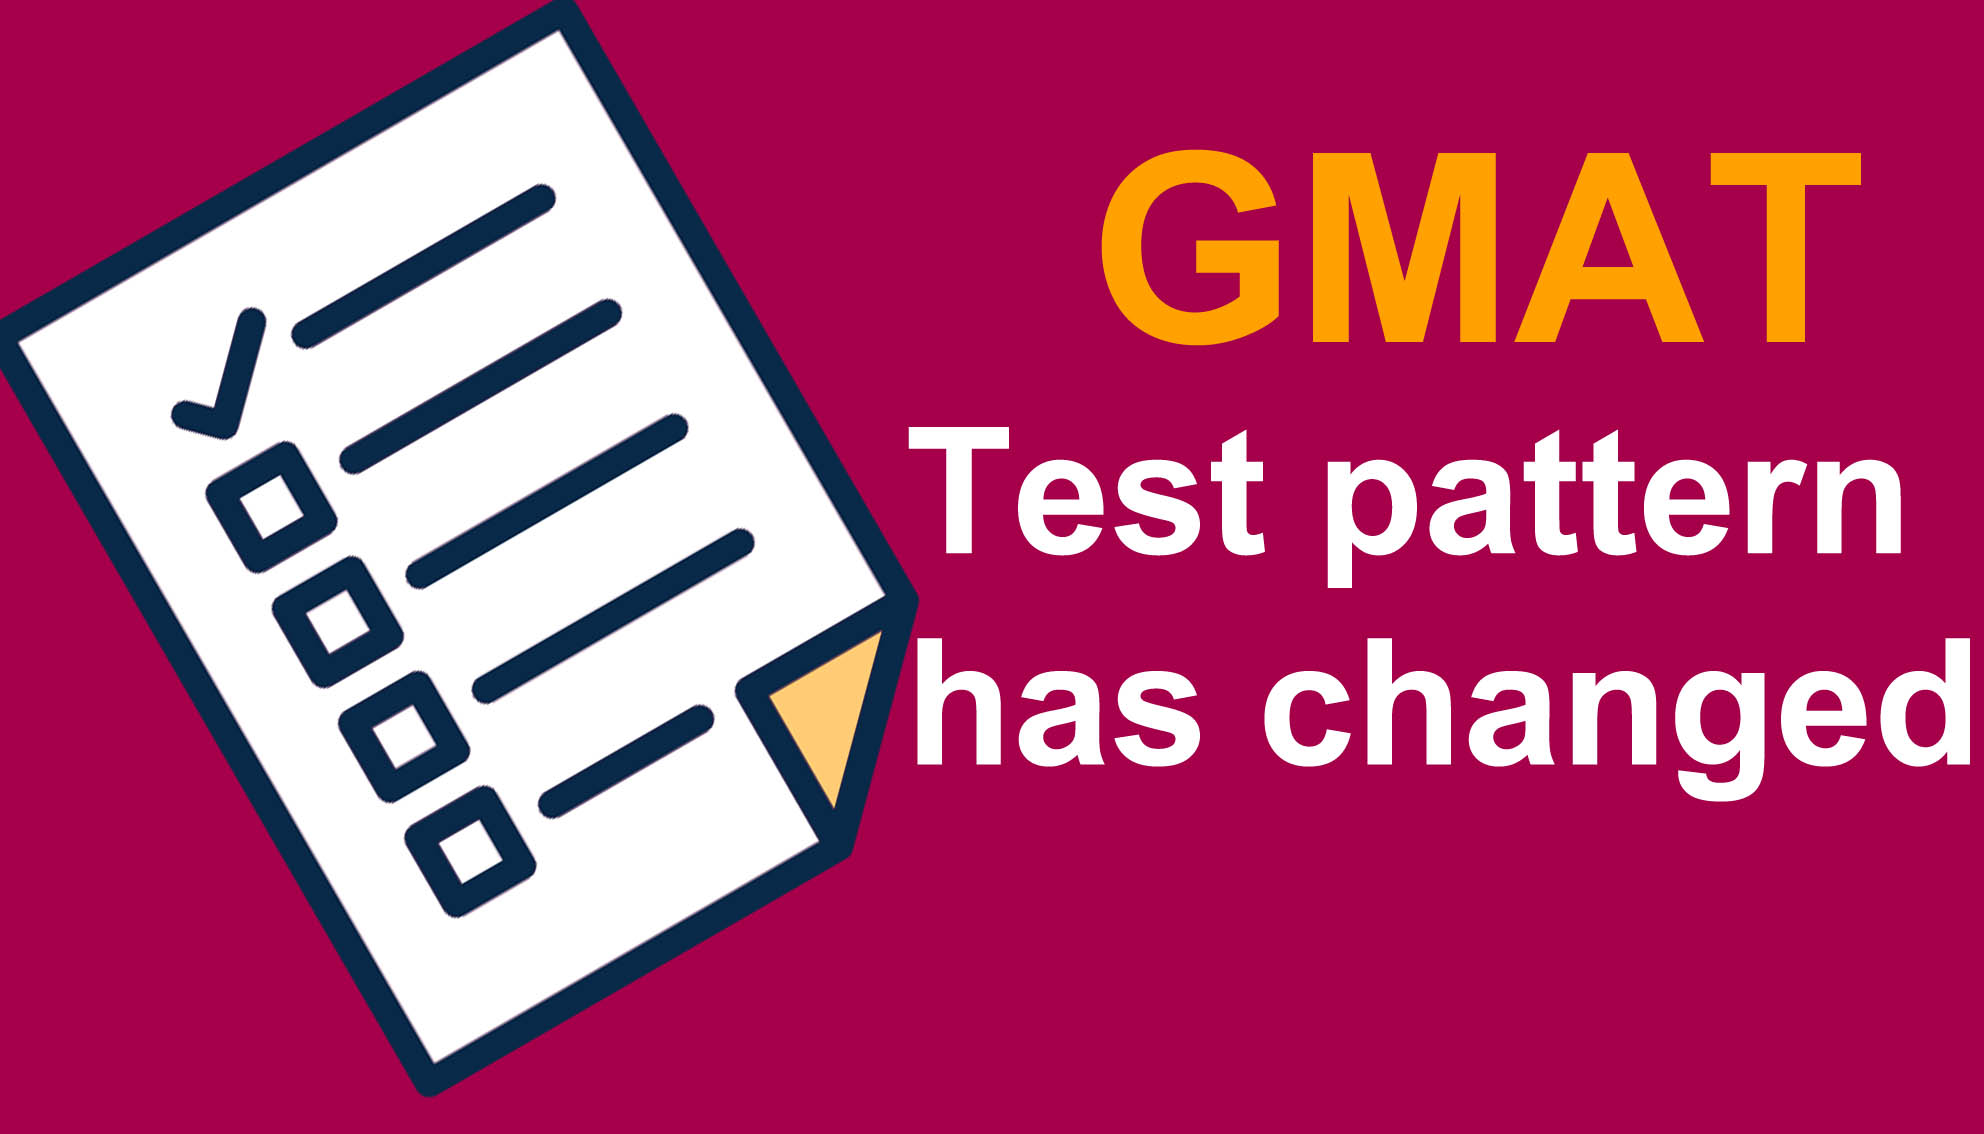 GMAT Test: What Should You Look For?